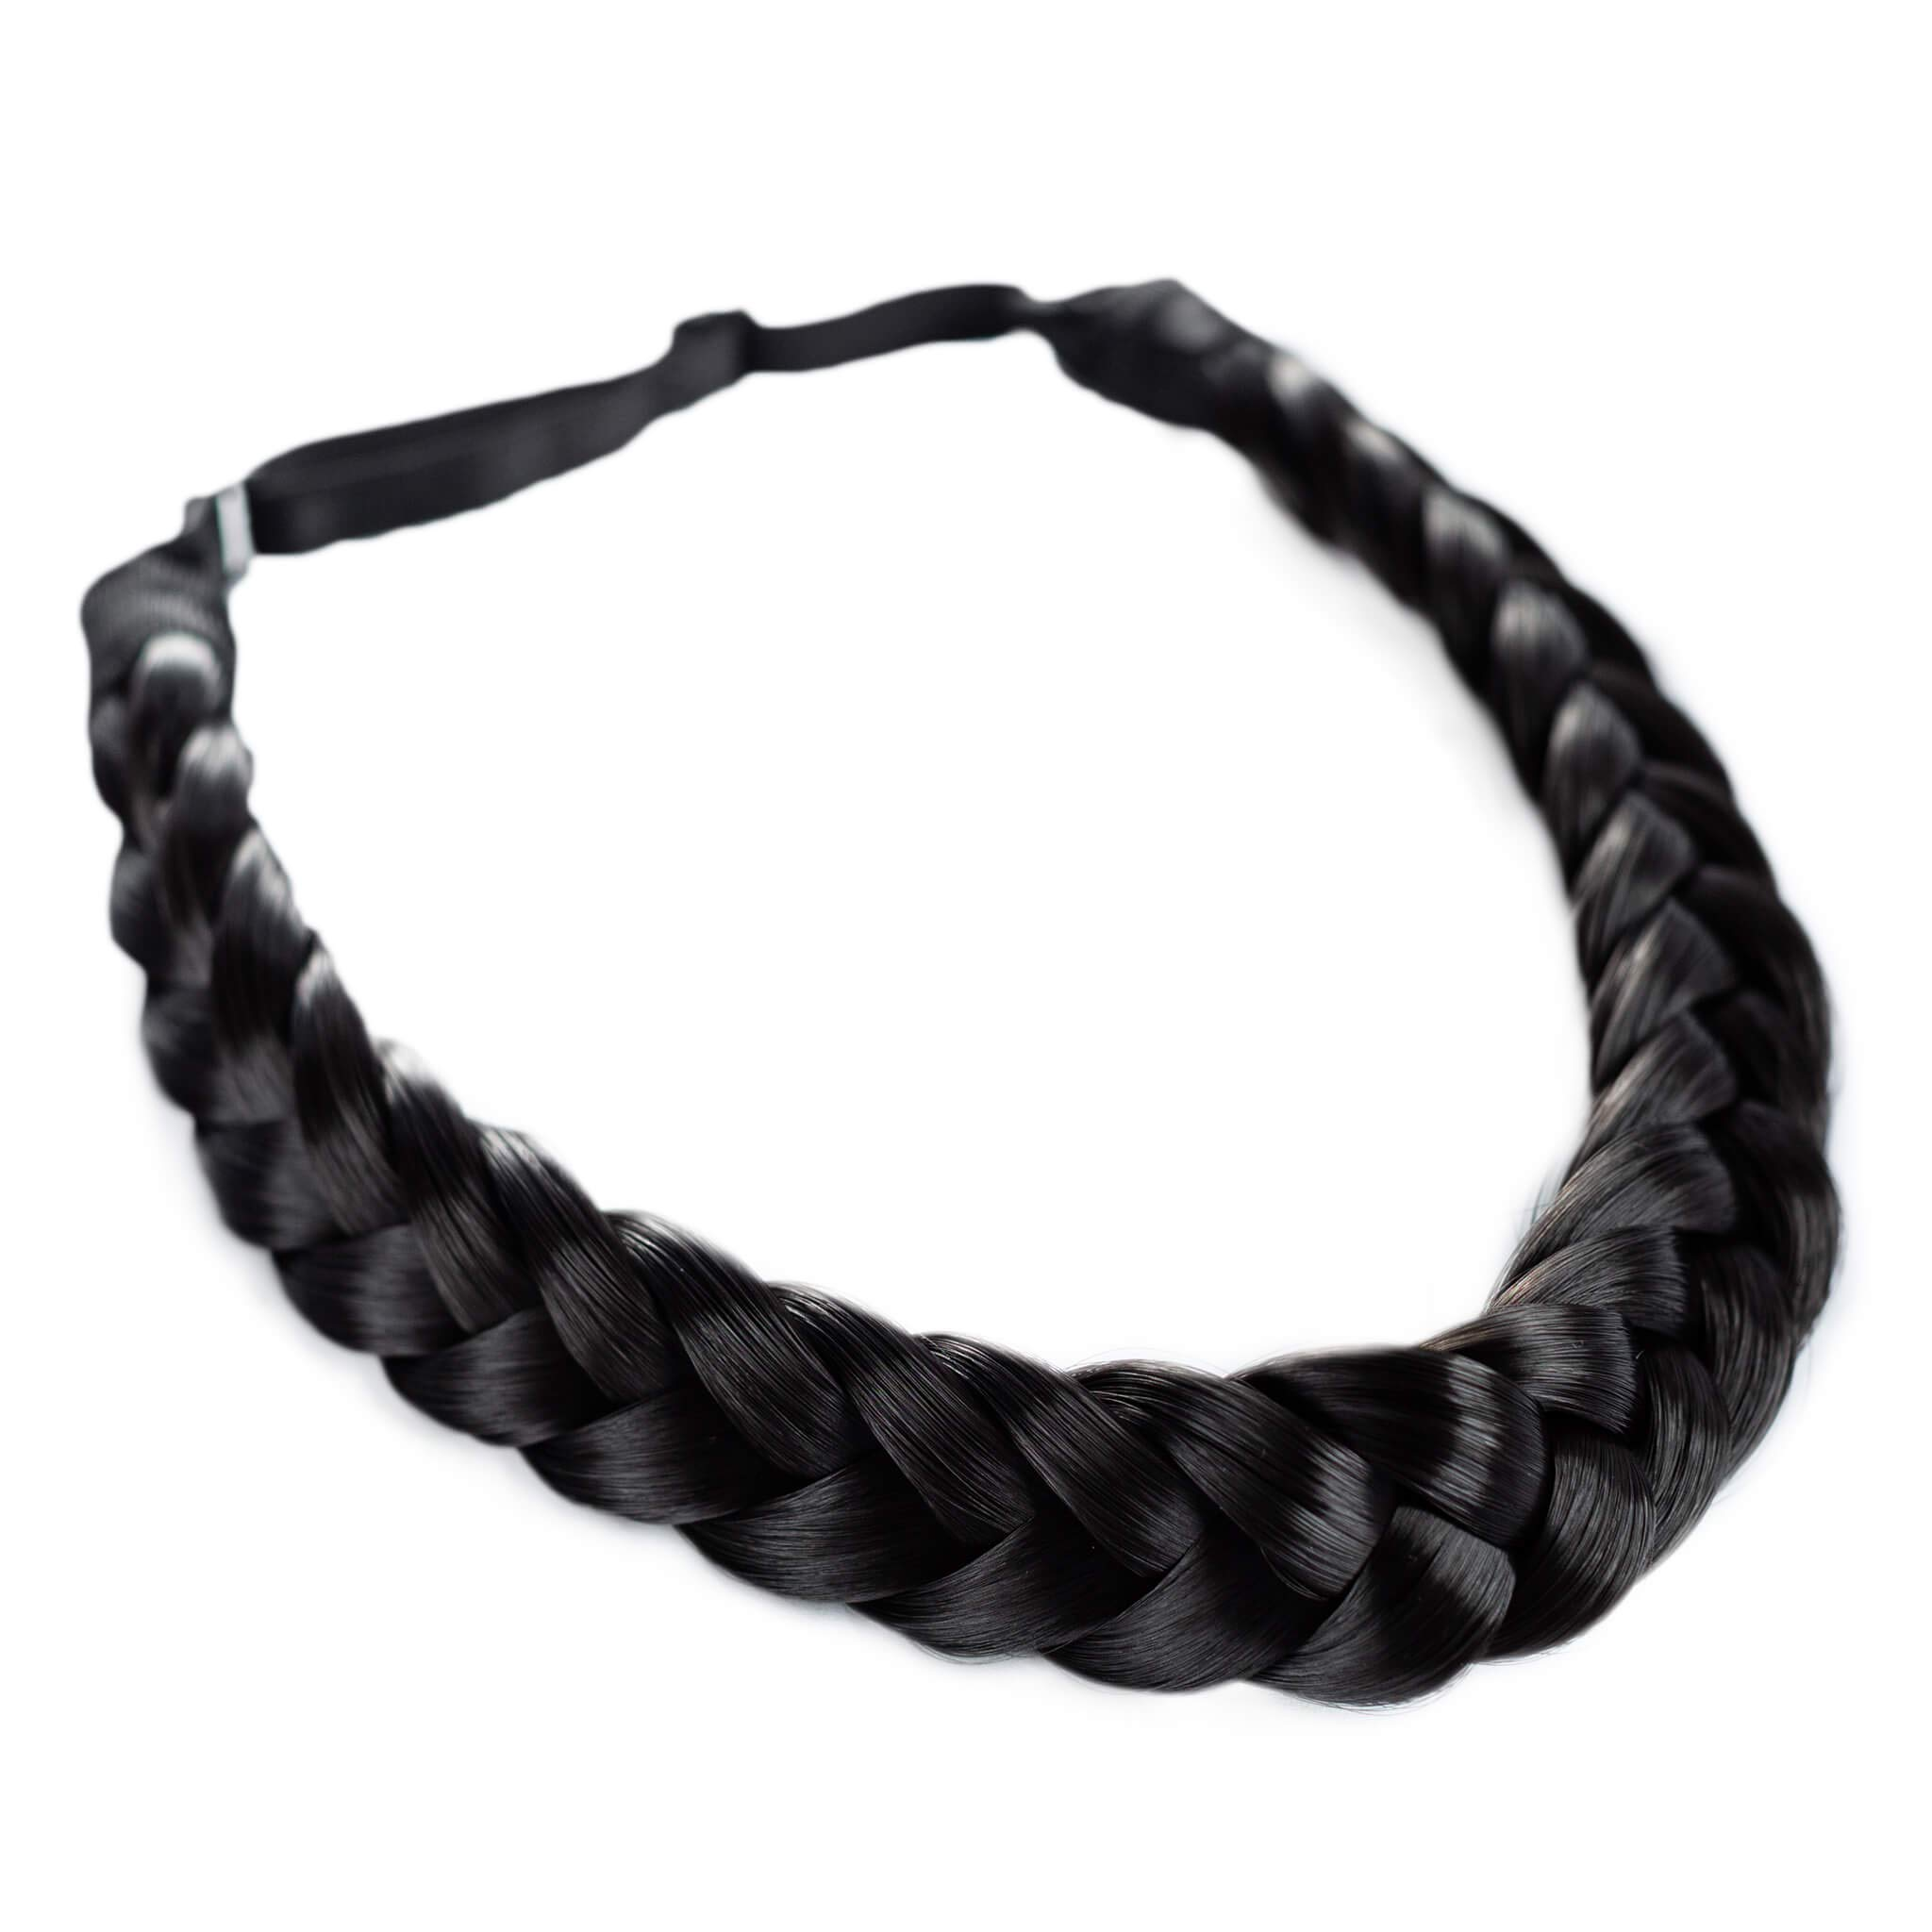 Madison Braids Women's Two Strand Headband Hair Braid Natural Looking Synthetic Hair Piece Extension - Lulu - Black by MADISON BRAIDS